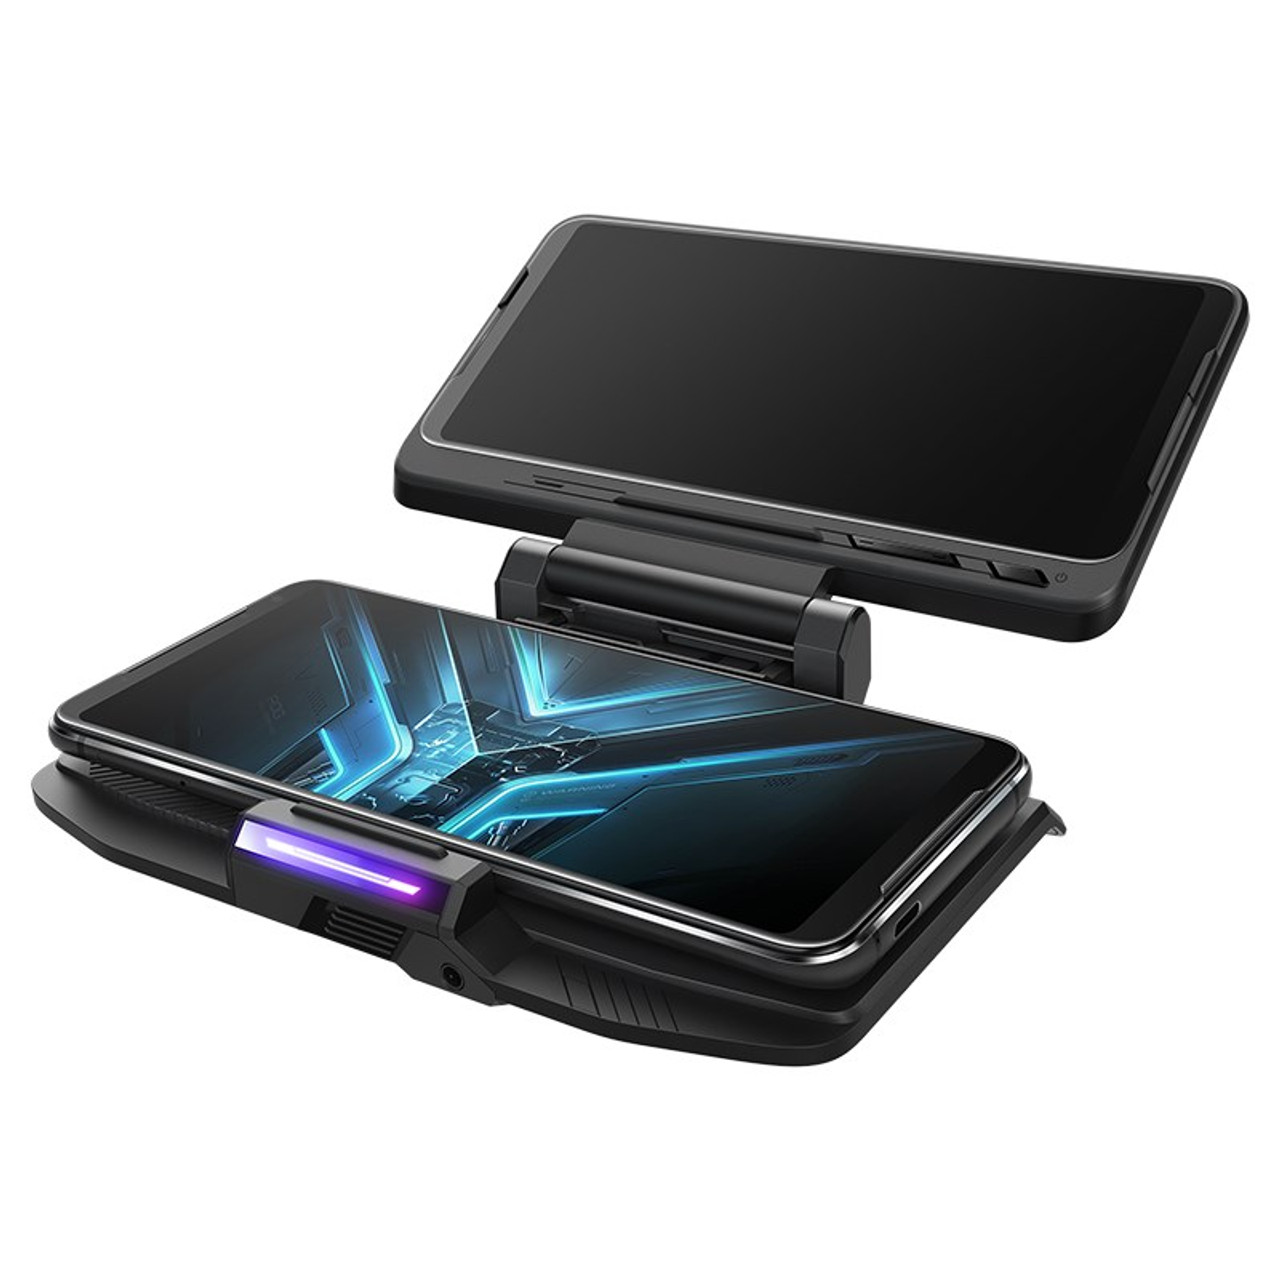 Image for Asus TwinView Dock 3 Dual-Screen Gaming Dock CX Computer Superstore